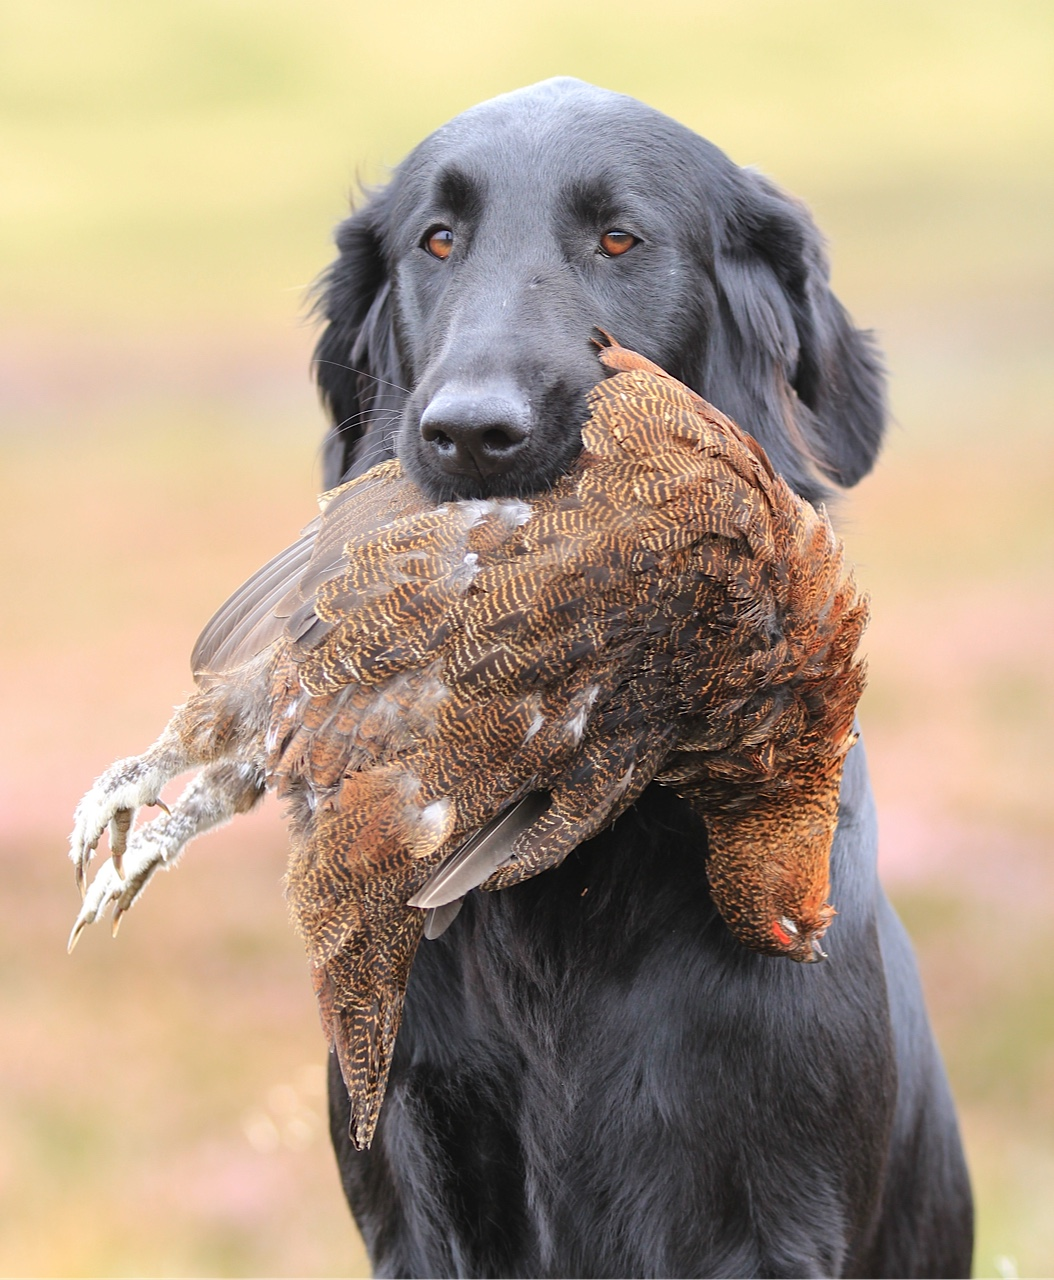 Ripple grouse